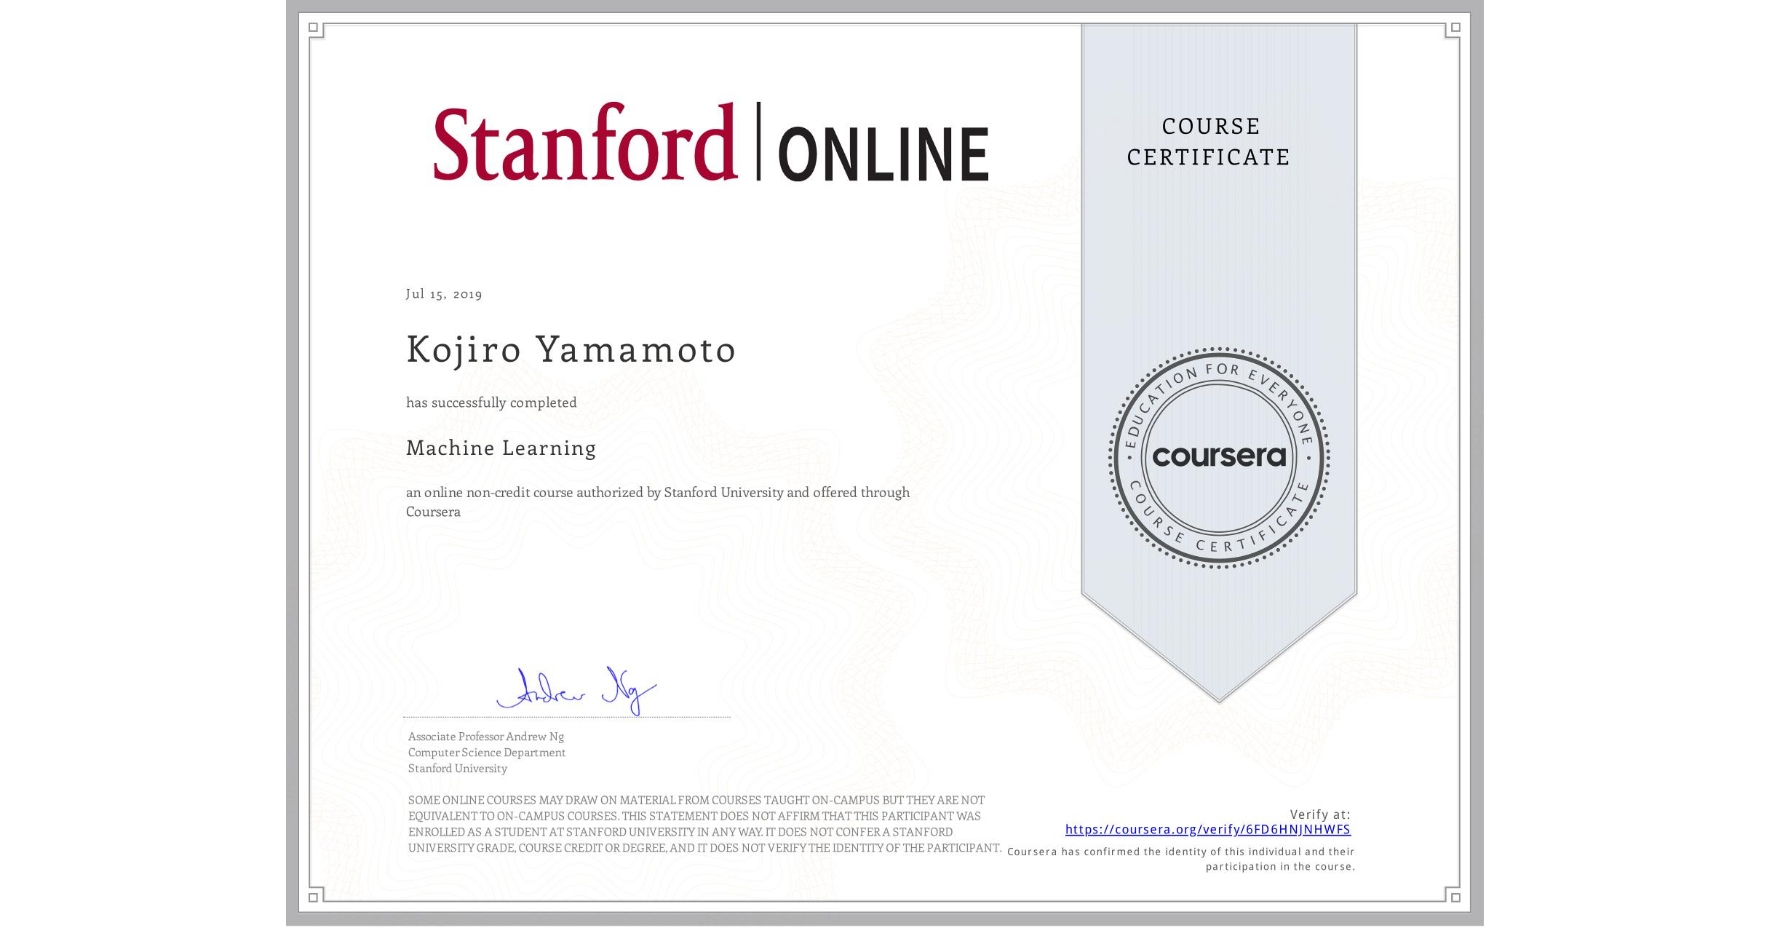 View certificate for Kojiro Yamamoto, Machine Learning, an online non-credit course authorized by Stanford University and offered through Coursera